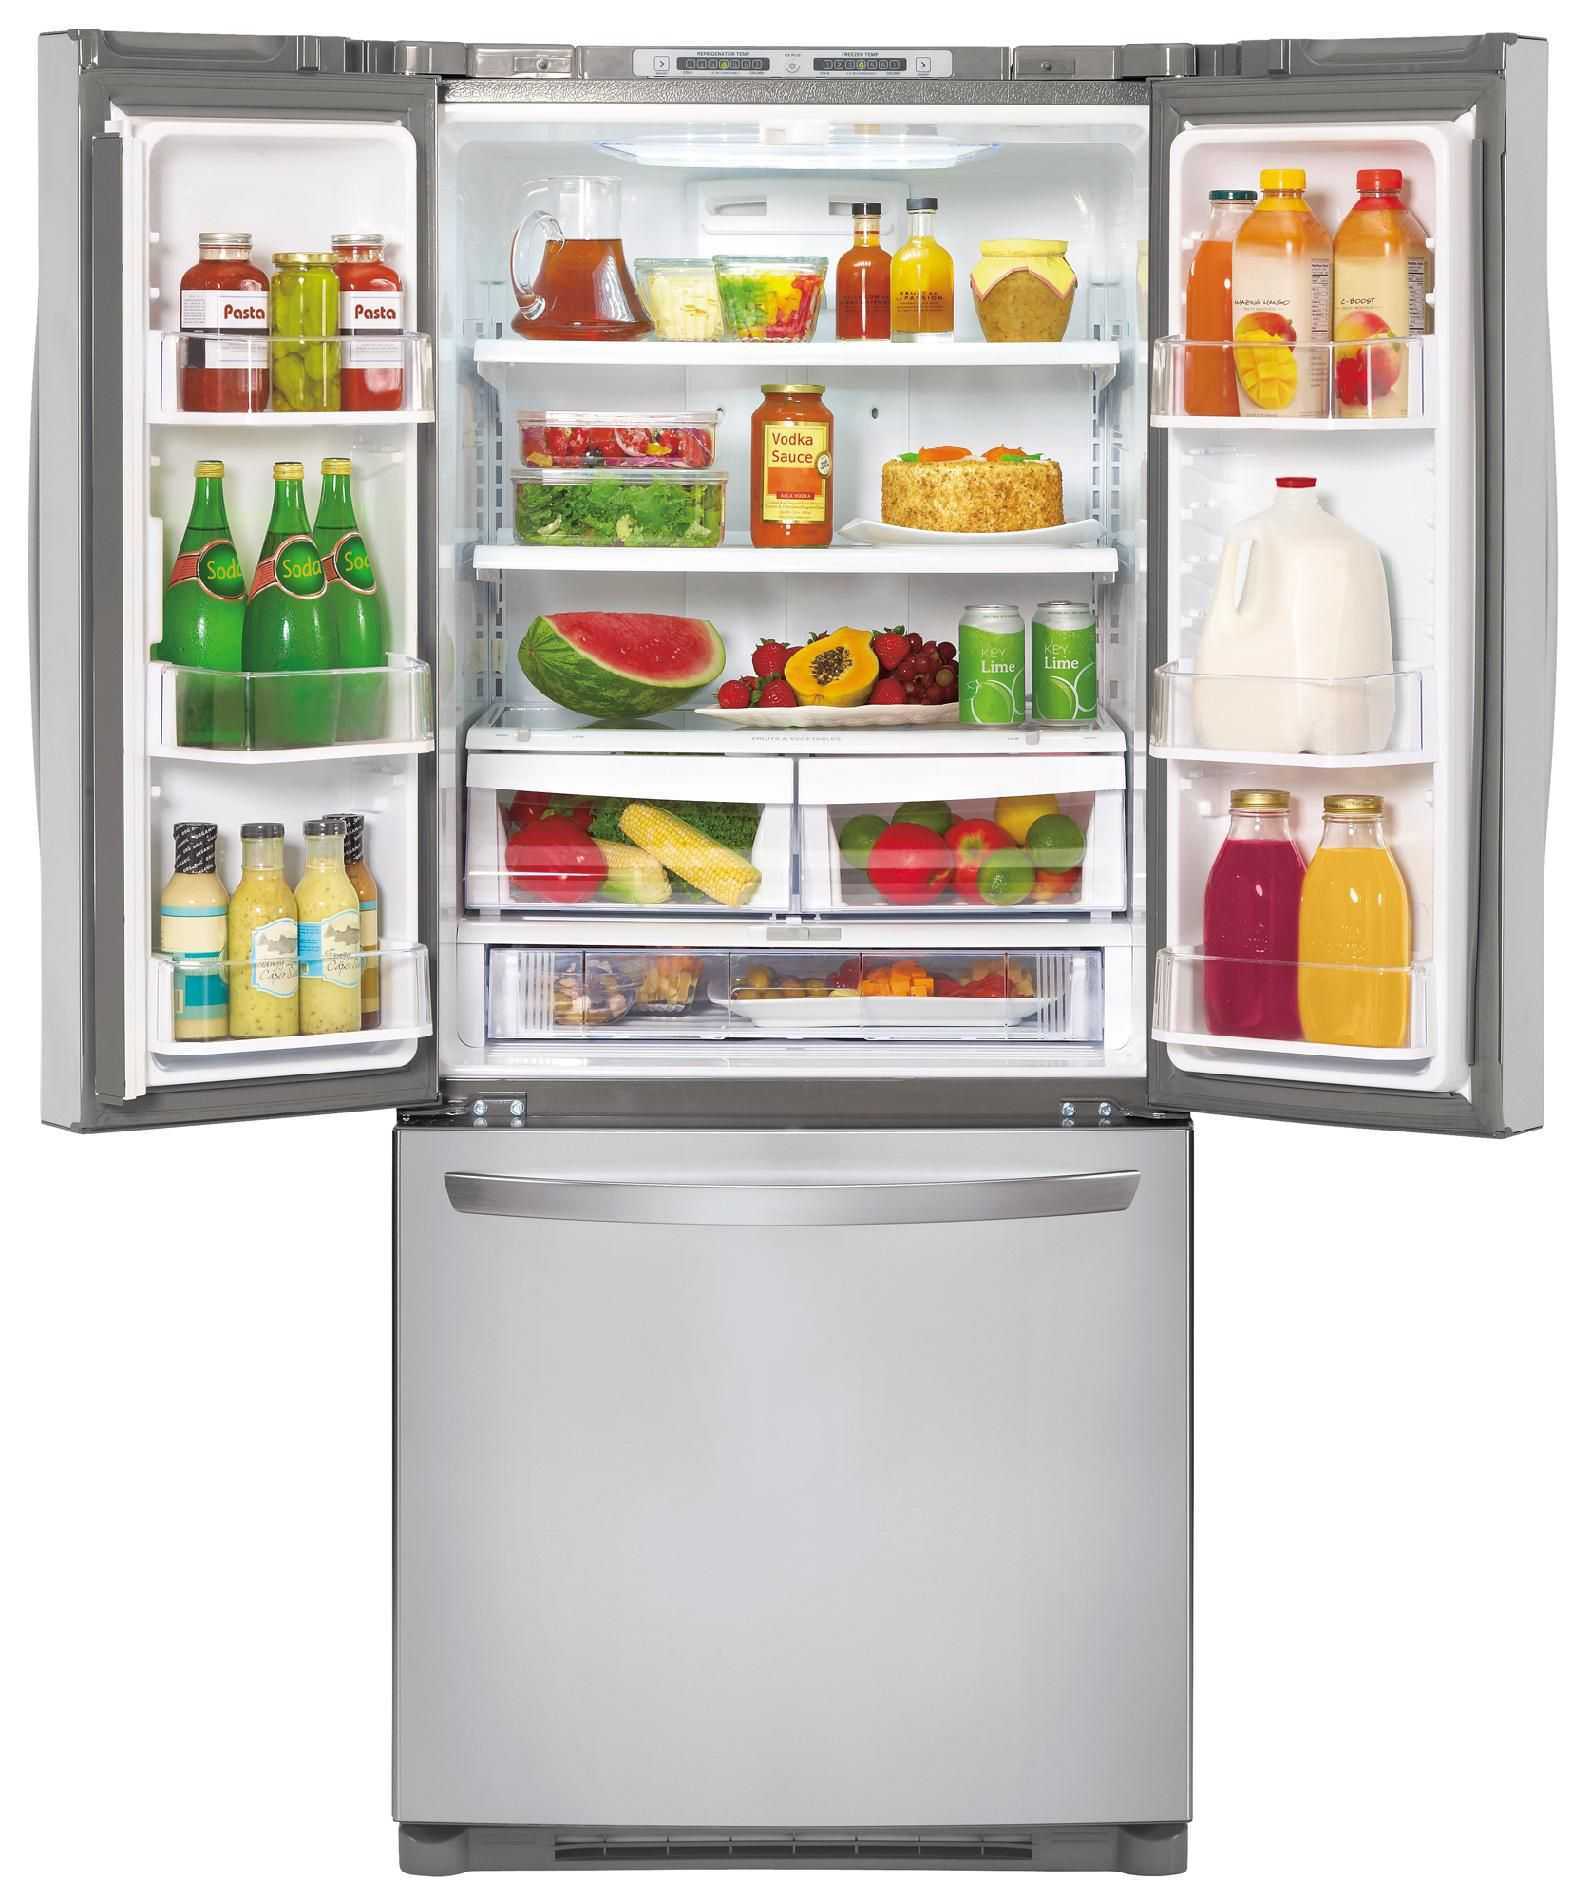 LG 19.7 cu. ft.  French Door Bottom-Freezer Refrigerator - Stainless Steel